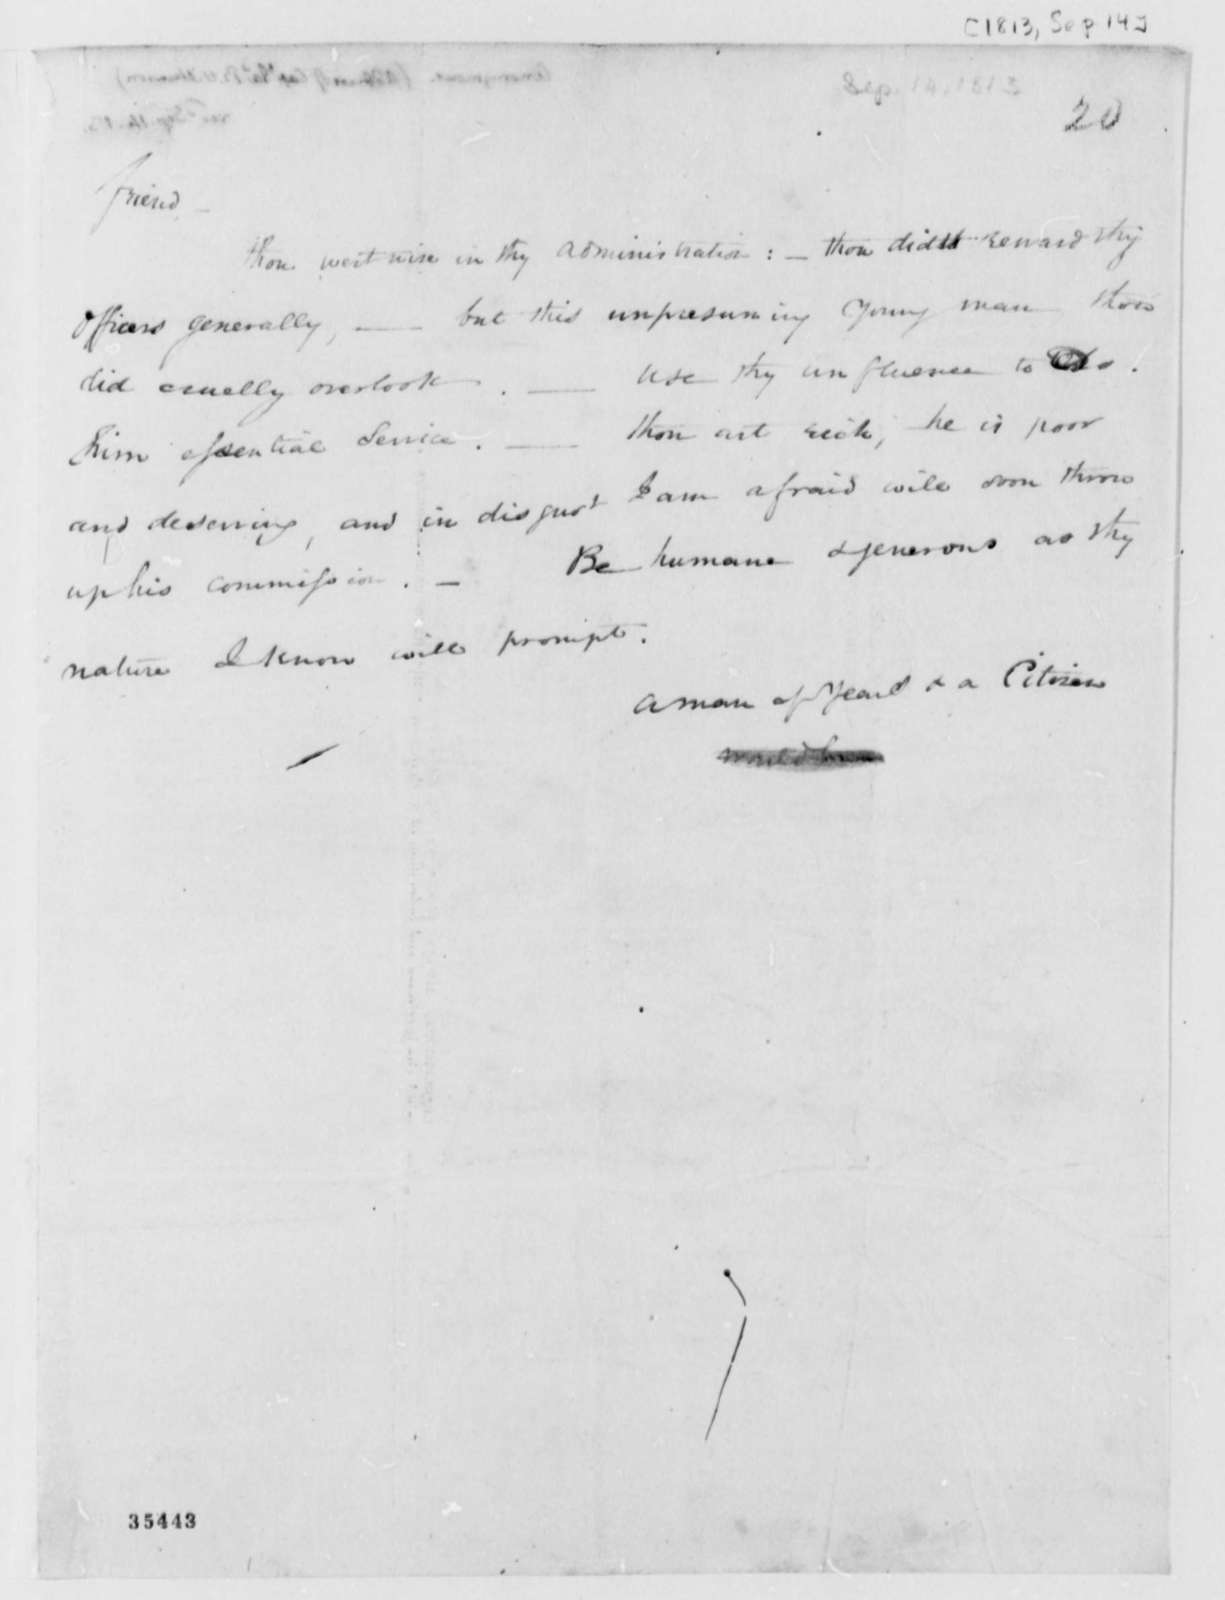 Anonymous to Thomas Jefferson, September 14, 1813, Signed A Man of Years & A Citizen